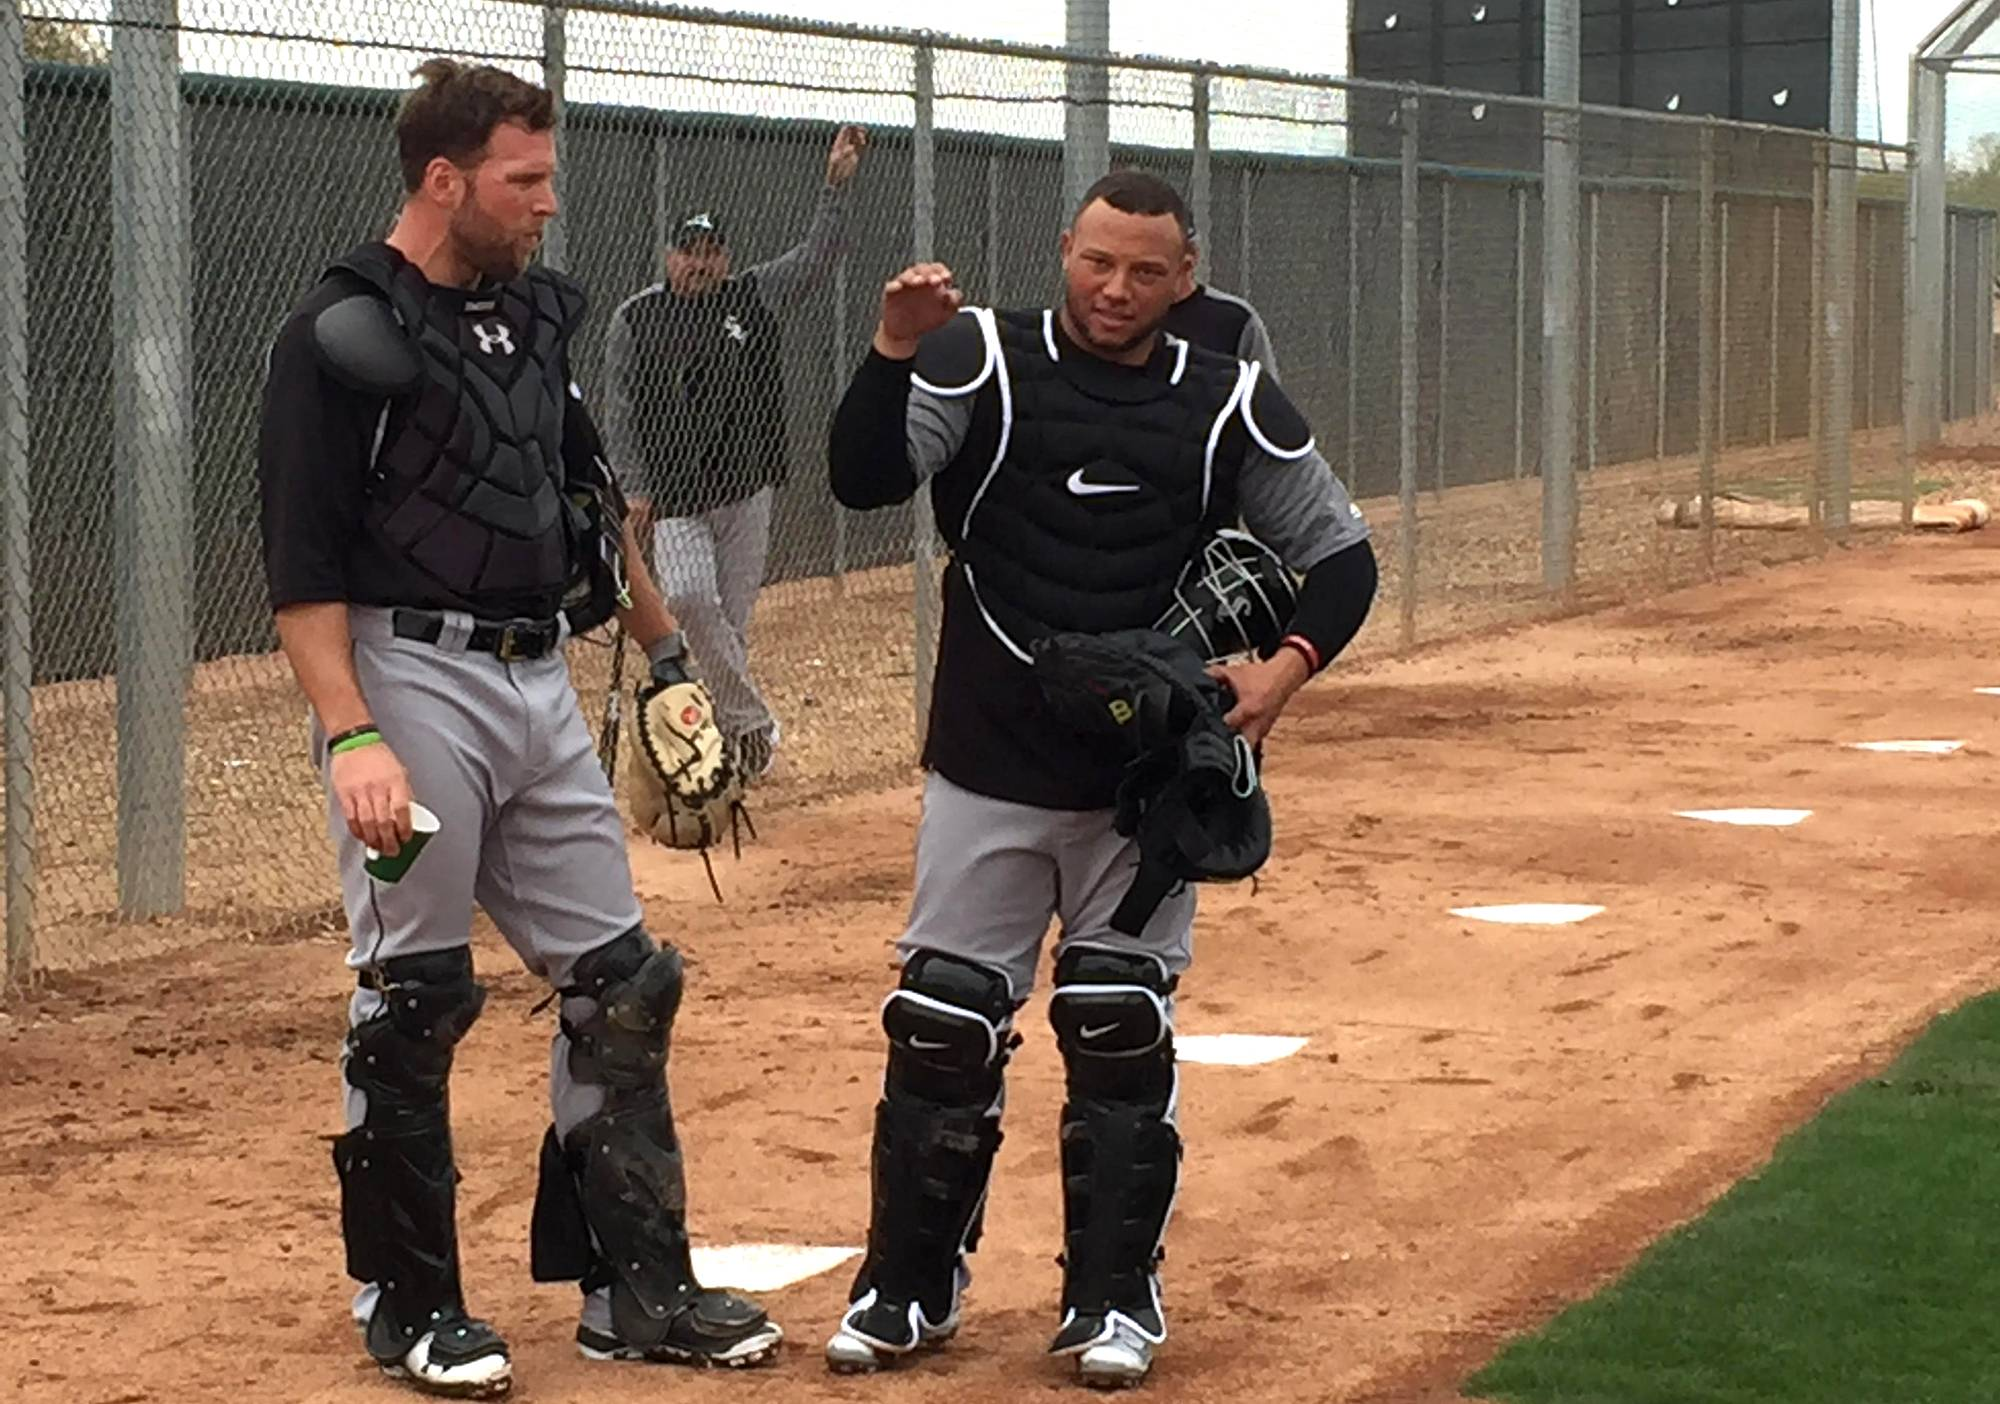 New White Sox catcher Welington Castillo, right, makes a point as the Sox work out at spring training at Glendale, Arizona, and Camelback Ranch on Friday, Feb. 16, 2018.